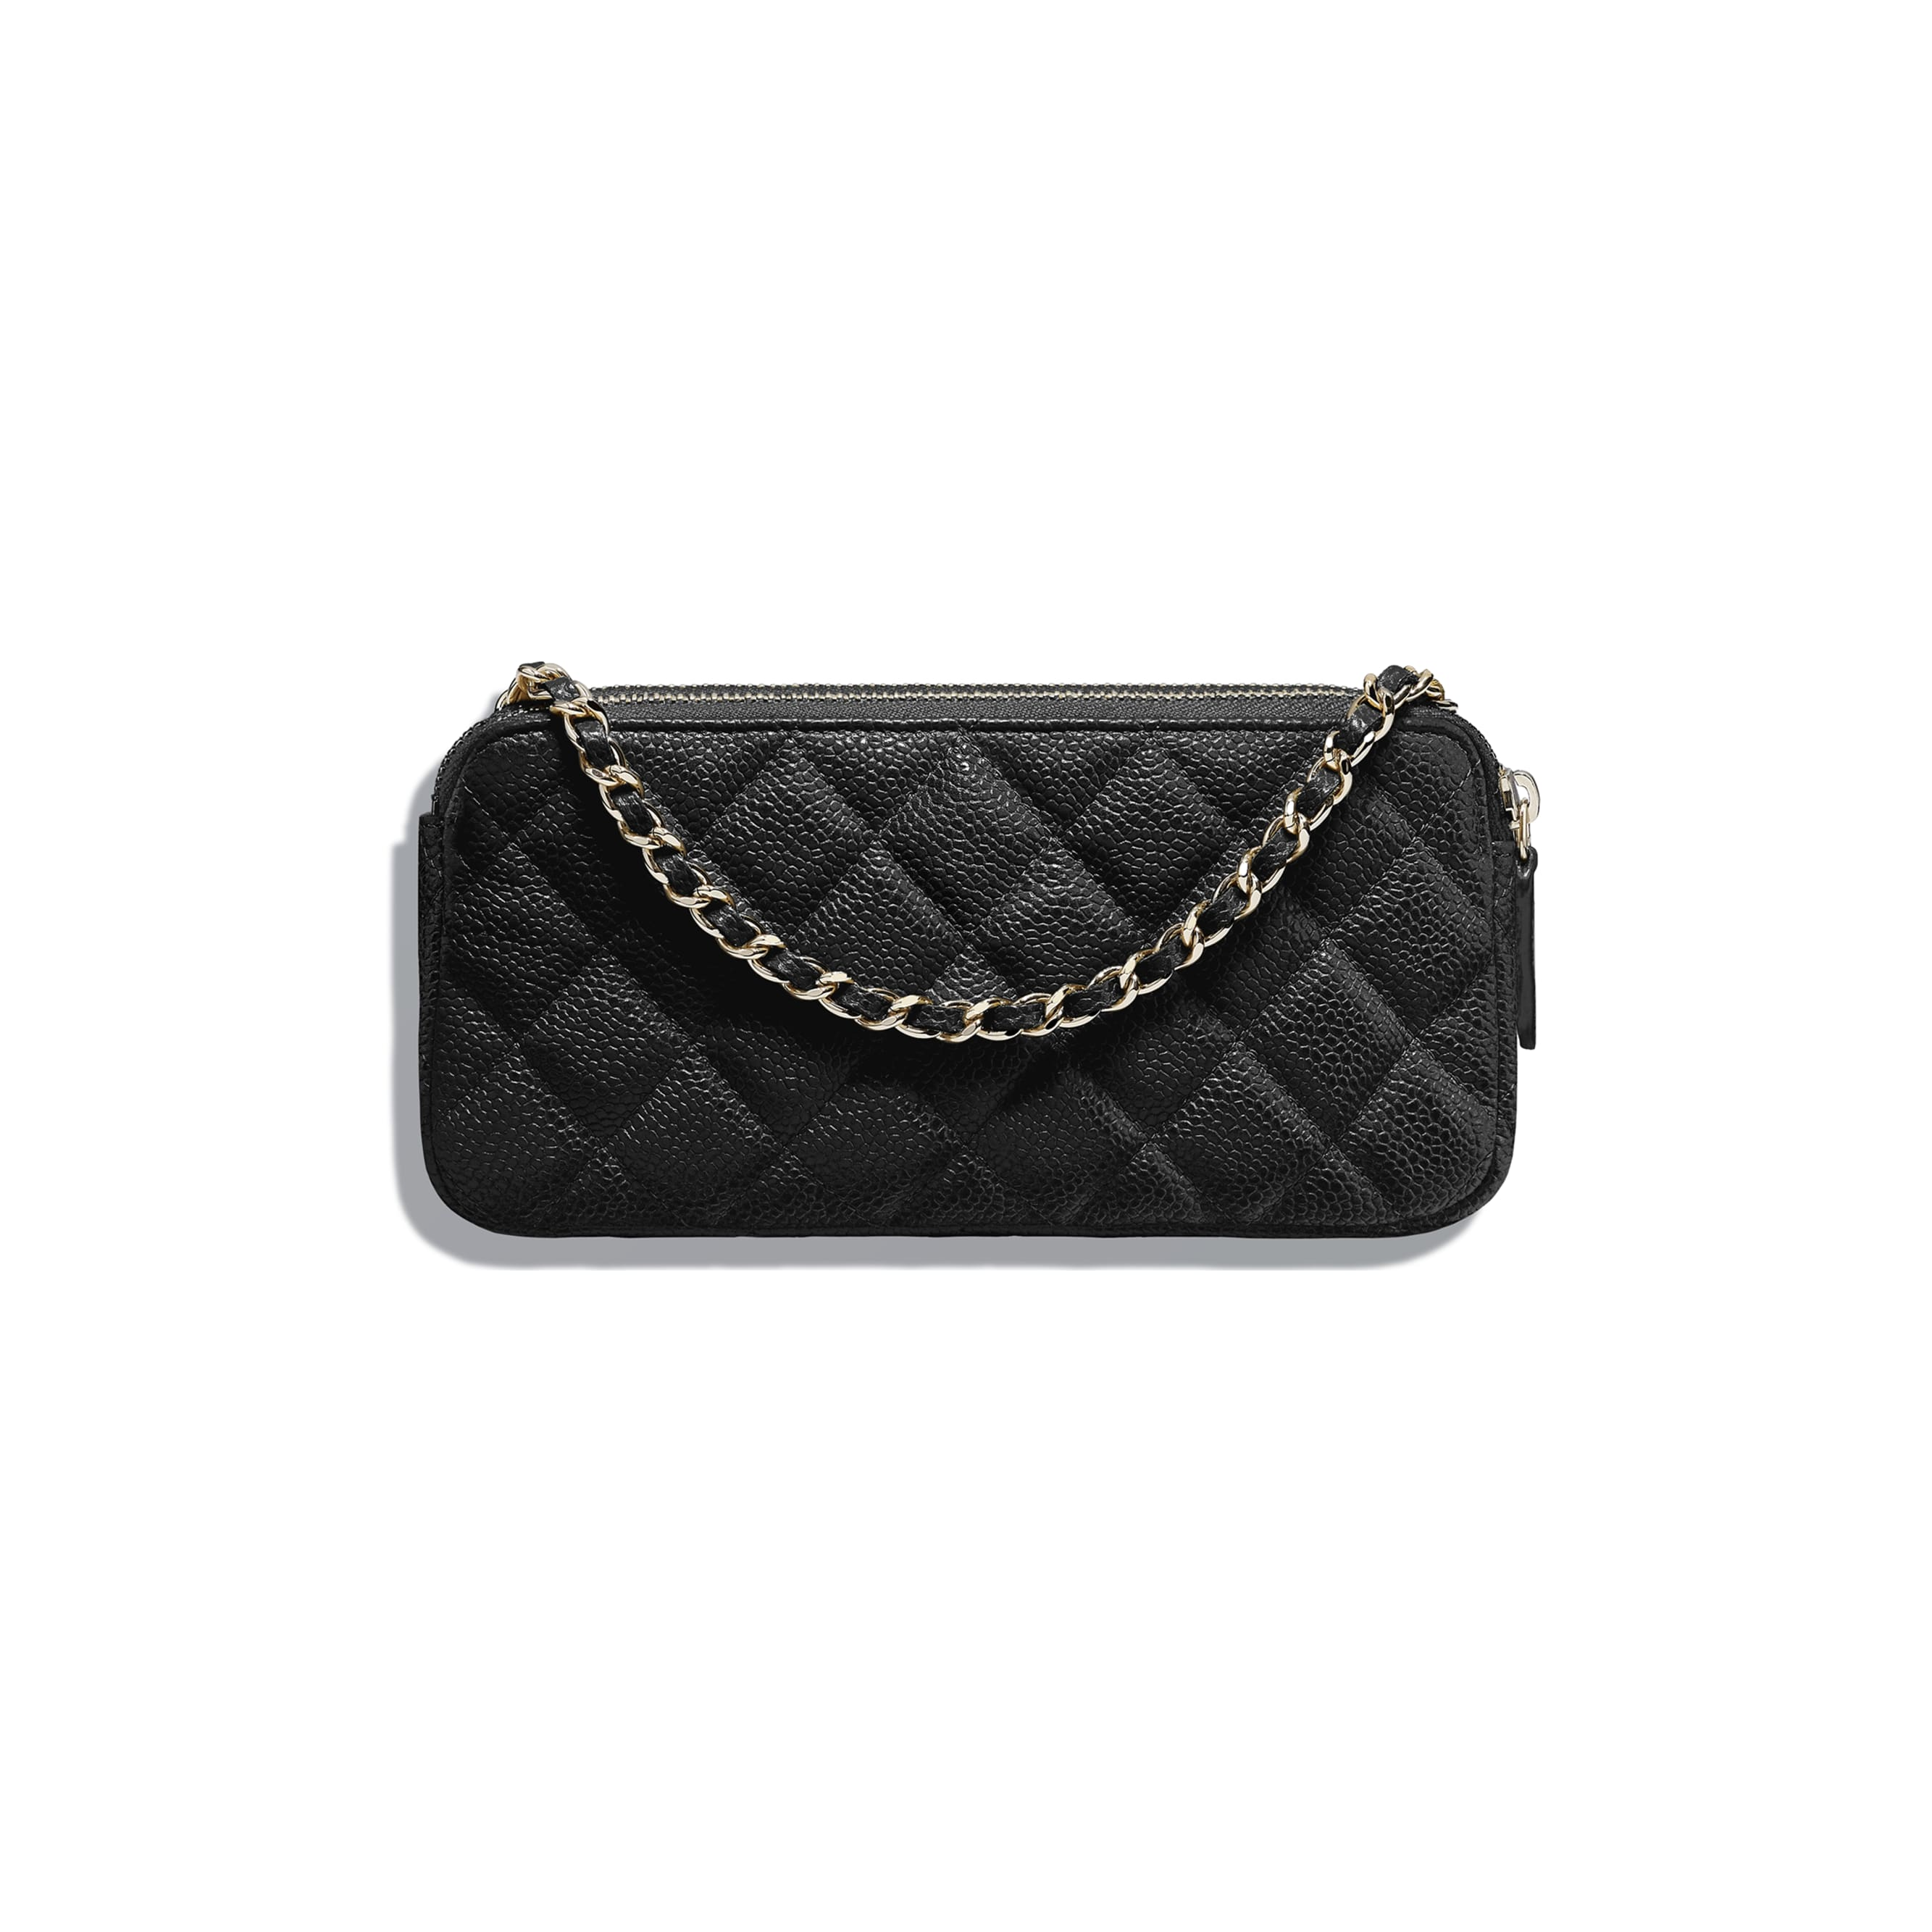 Classic Clutch with Chain - Black - Grained Calfskin & Gold-Tone Metal - Alternative view - see standard sized version